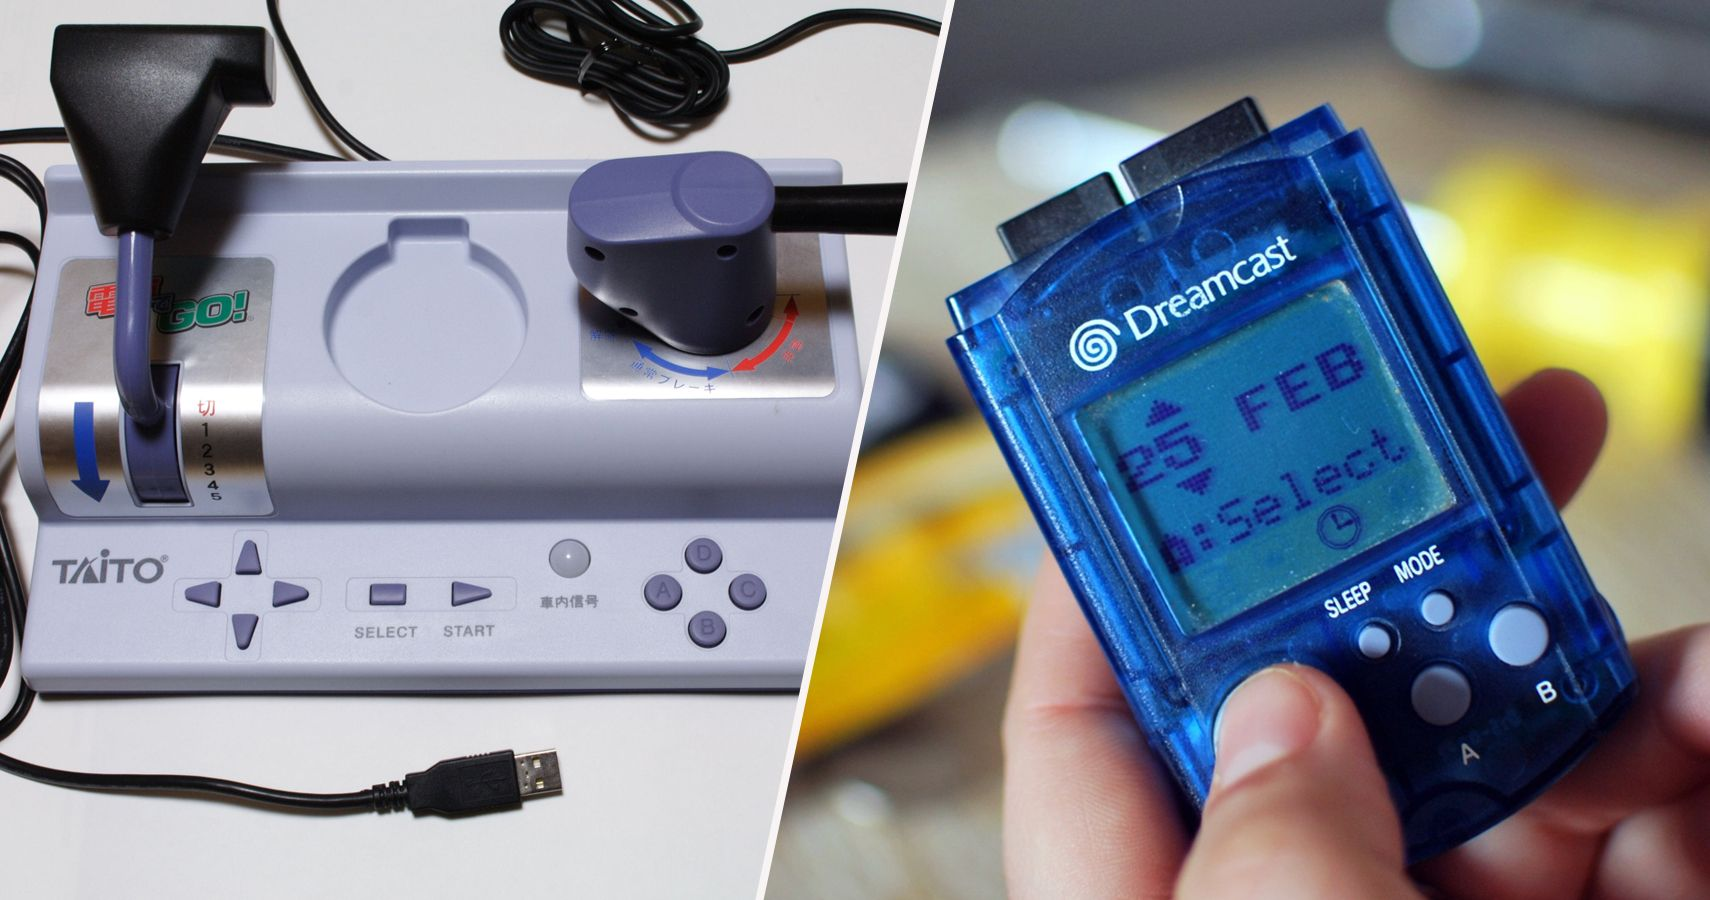 25 Things Only Super Fans Knew The Sega Dreamcast Could Do